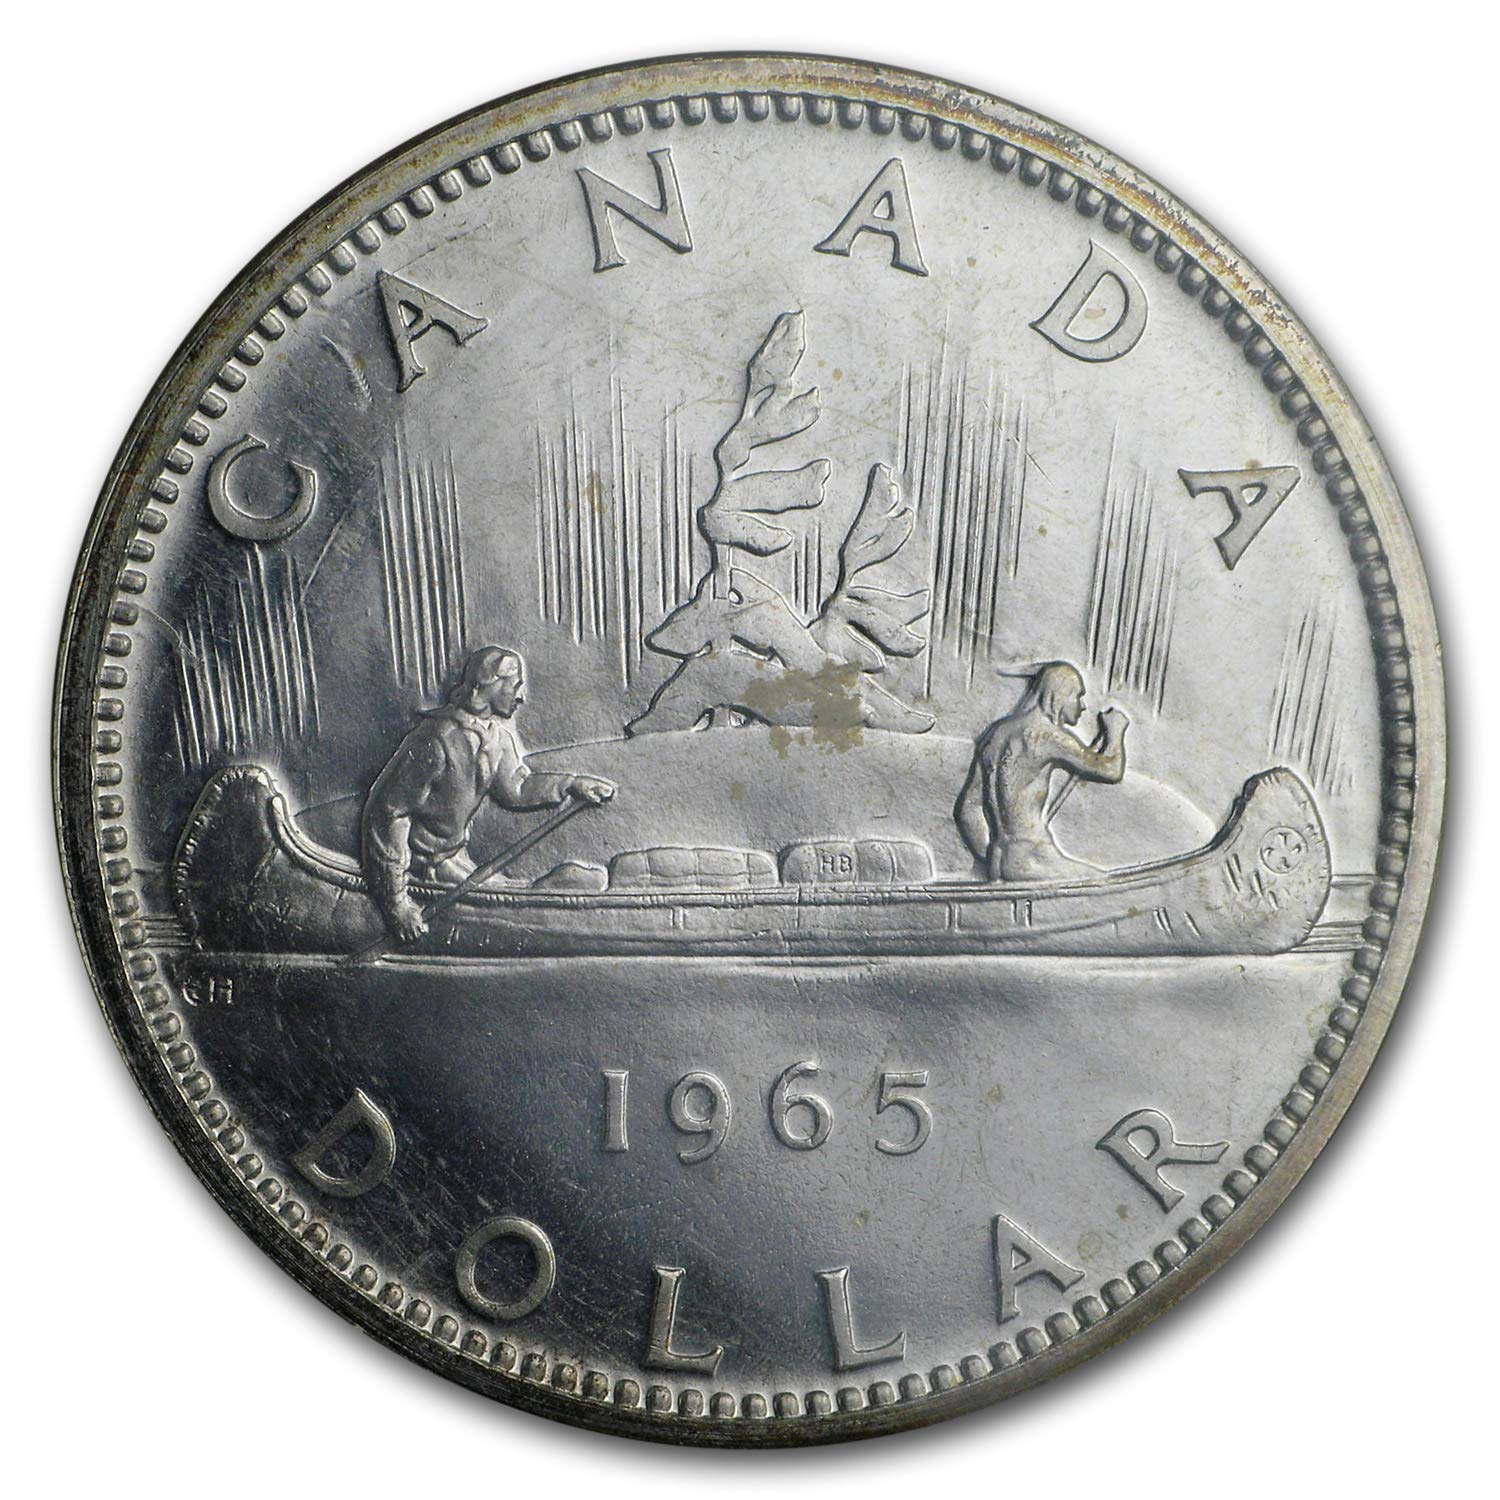 1965 CANADA QUARTER CHOICE PROOFLIKE BU FROM SET GREAT PRICE!